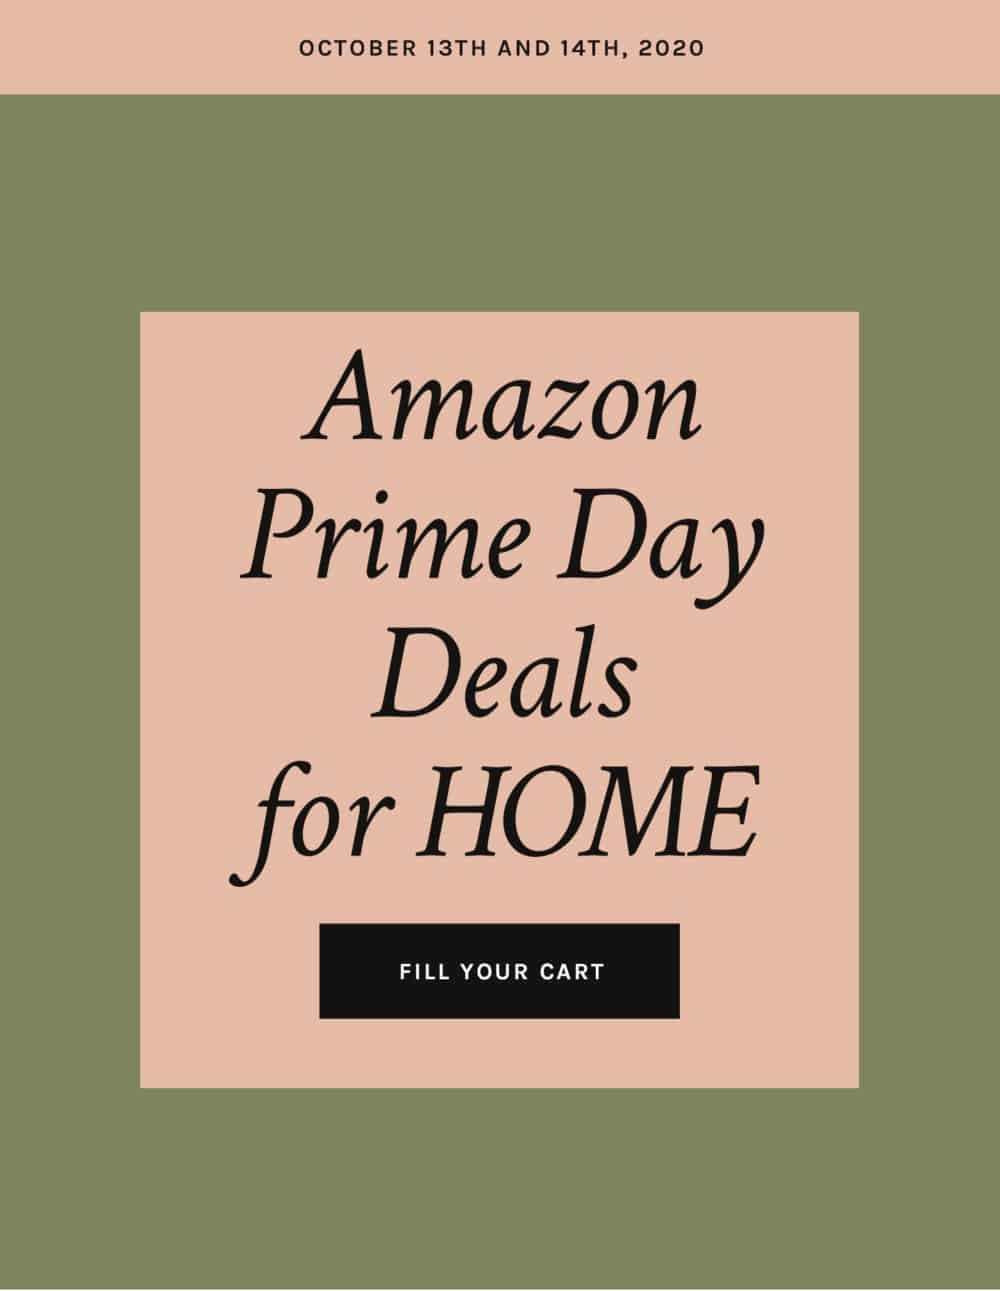 Amazon Prime Day Deals for Home 2020